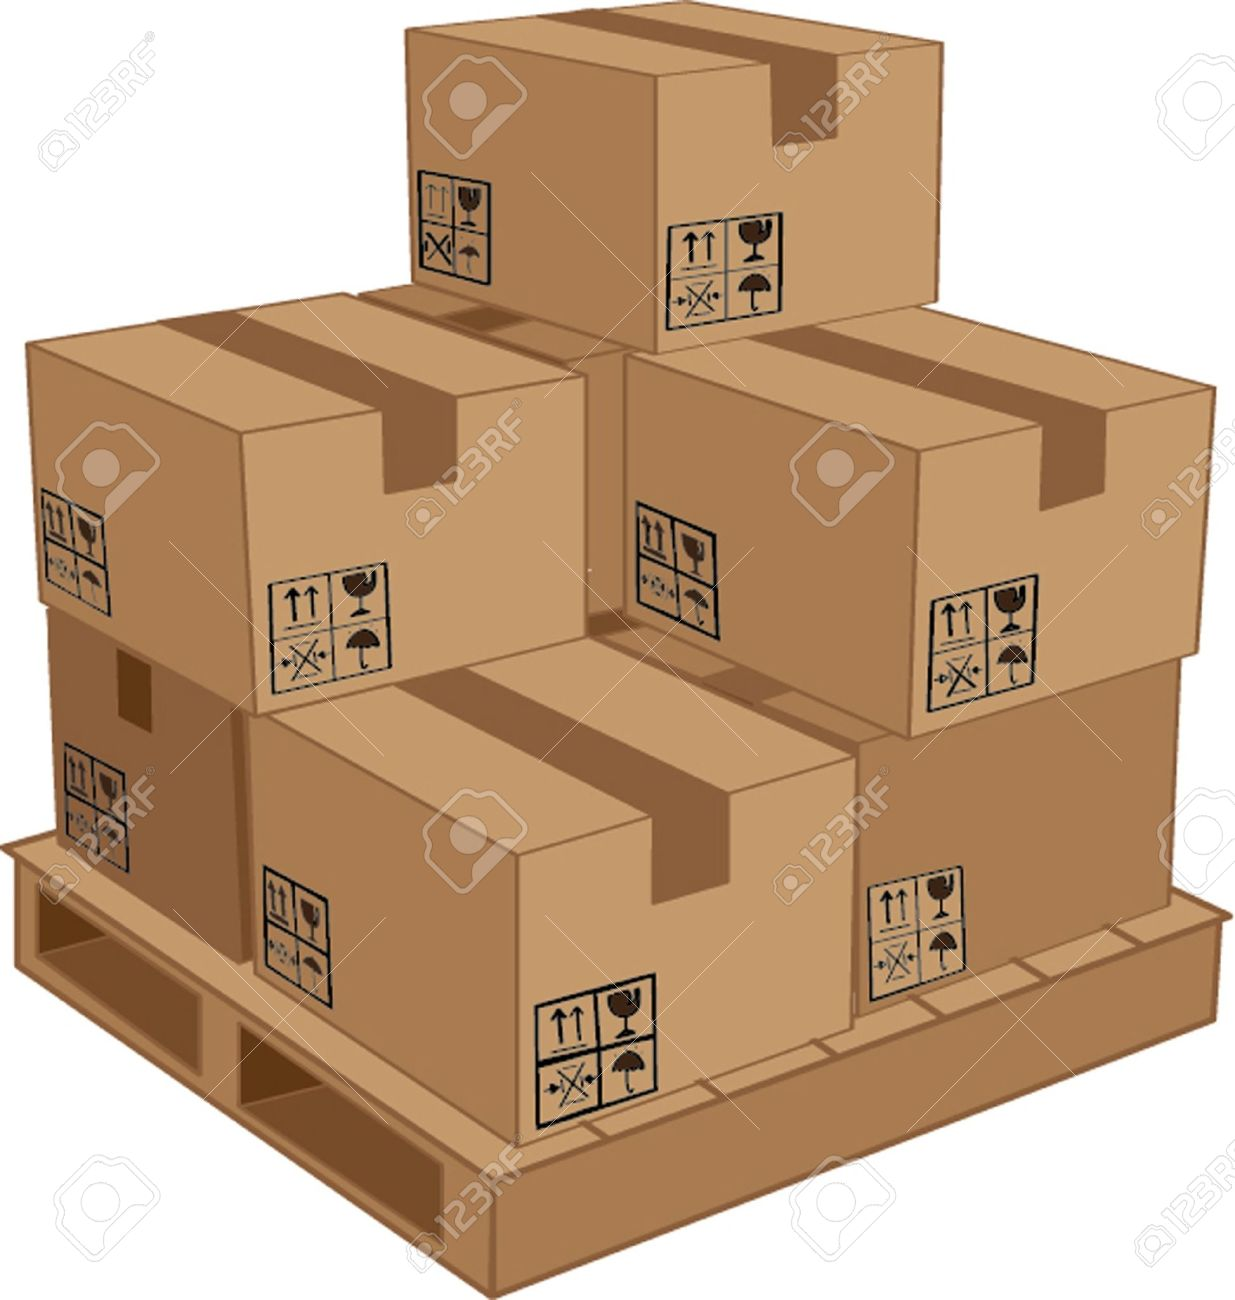 5,988 Pallet Stock Vector Illustration And Royalty Free Pallet Clipart.